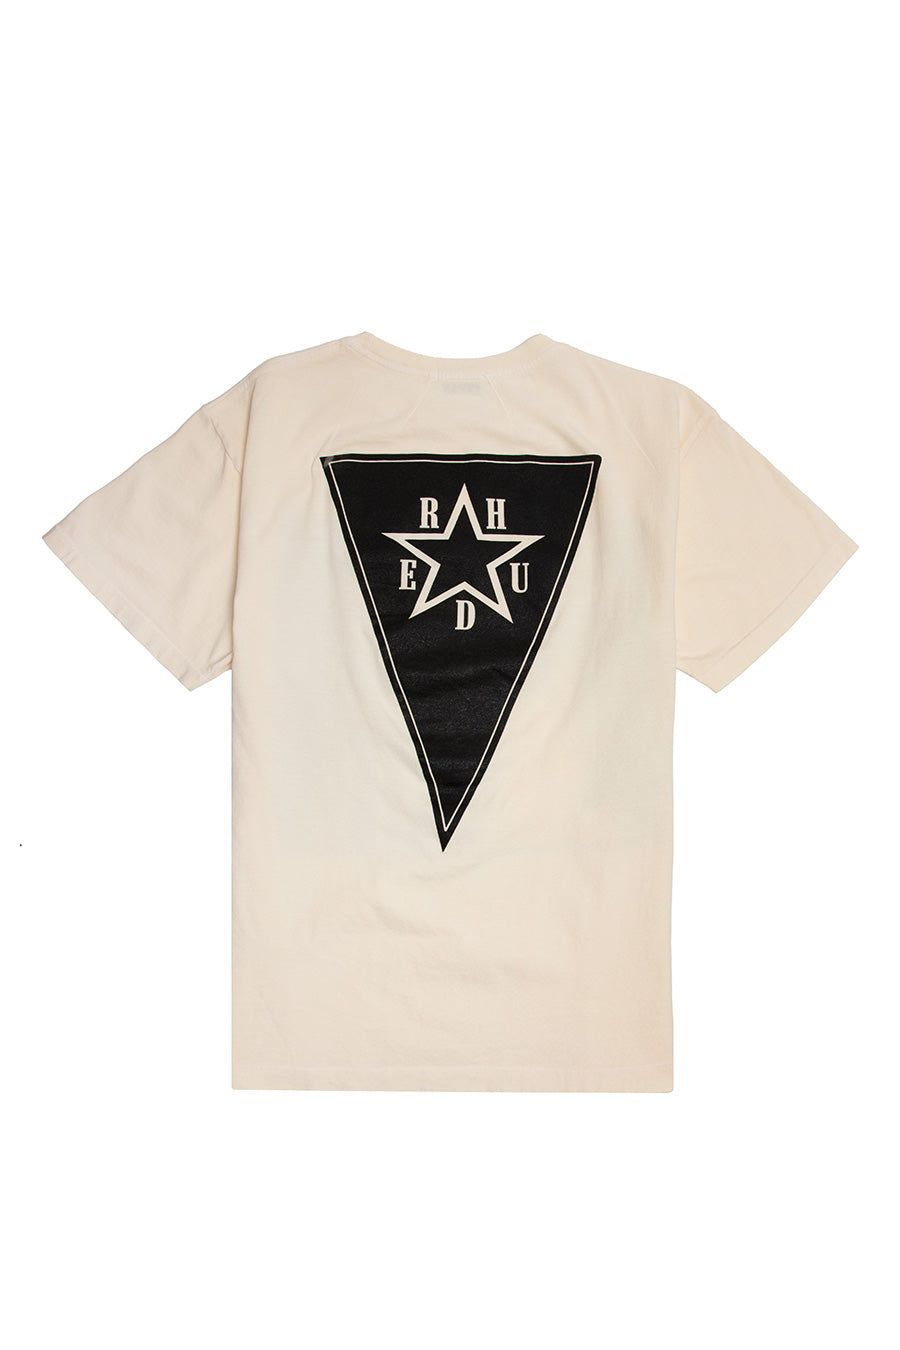 Rhude - White Post Stamp T-Shirt | 1032 SPACE